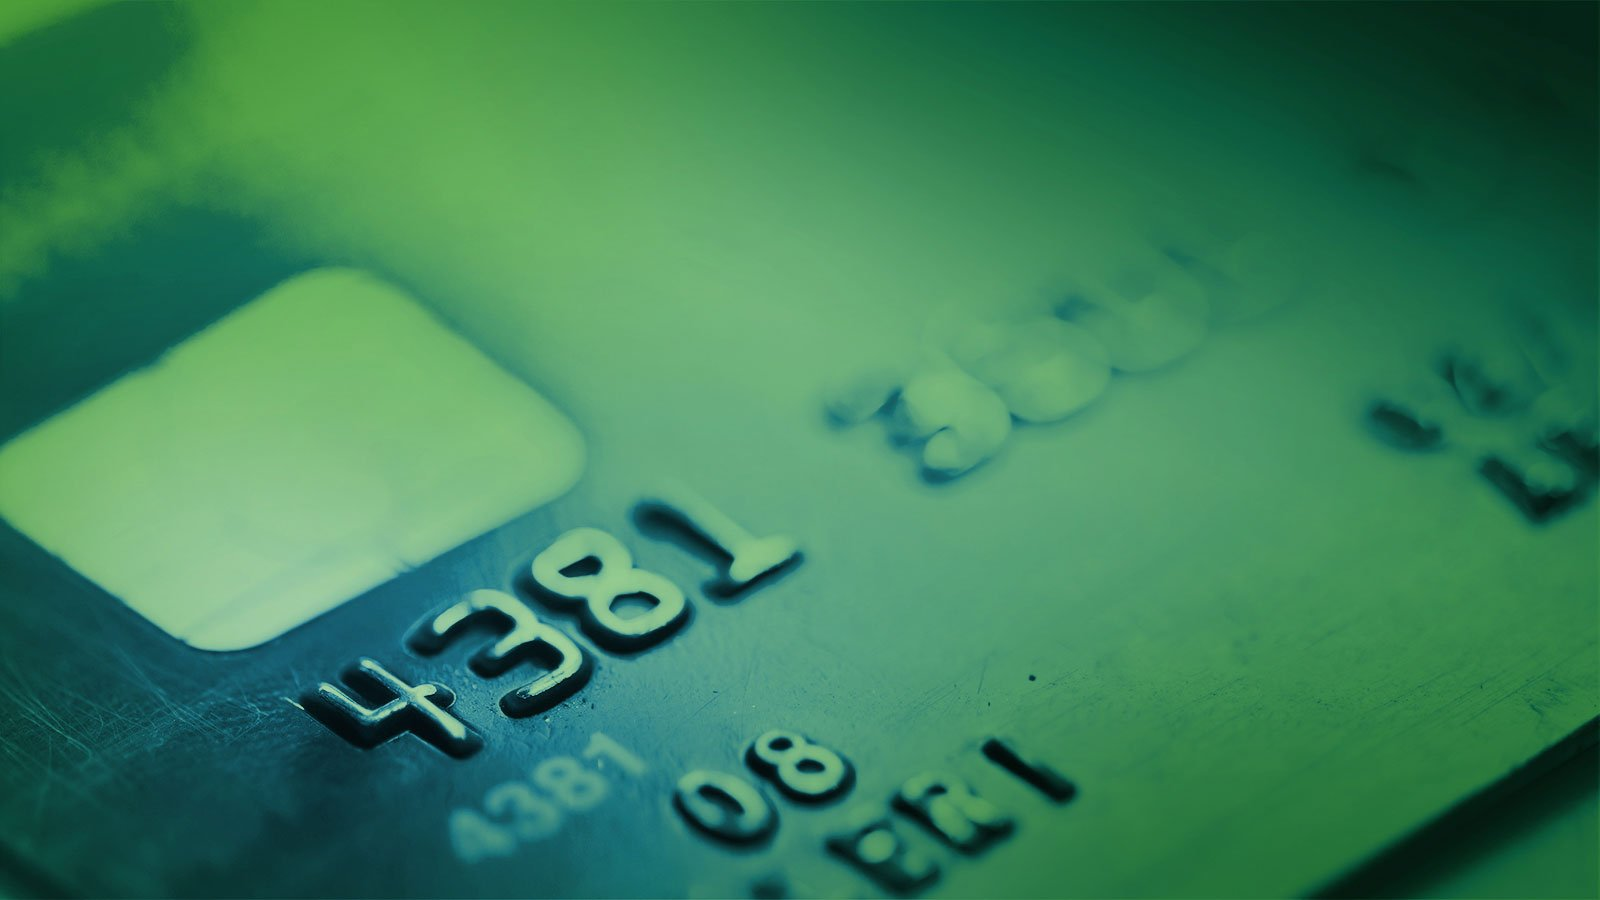 Credit card tokenization for data security